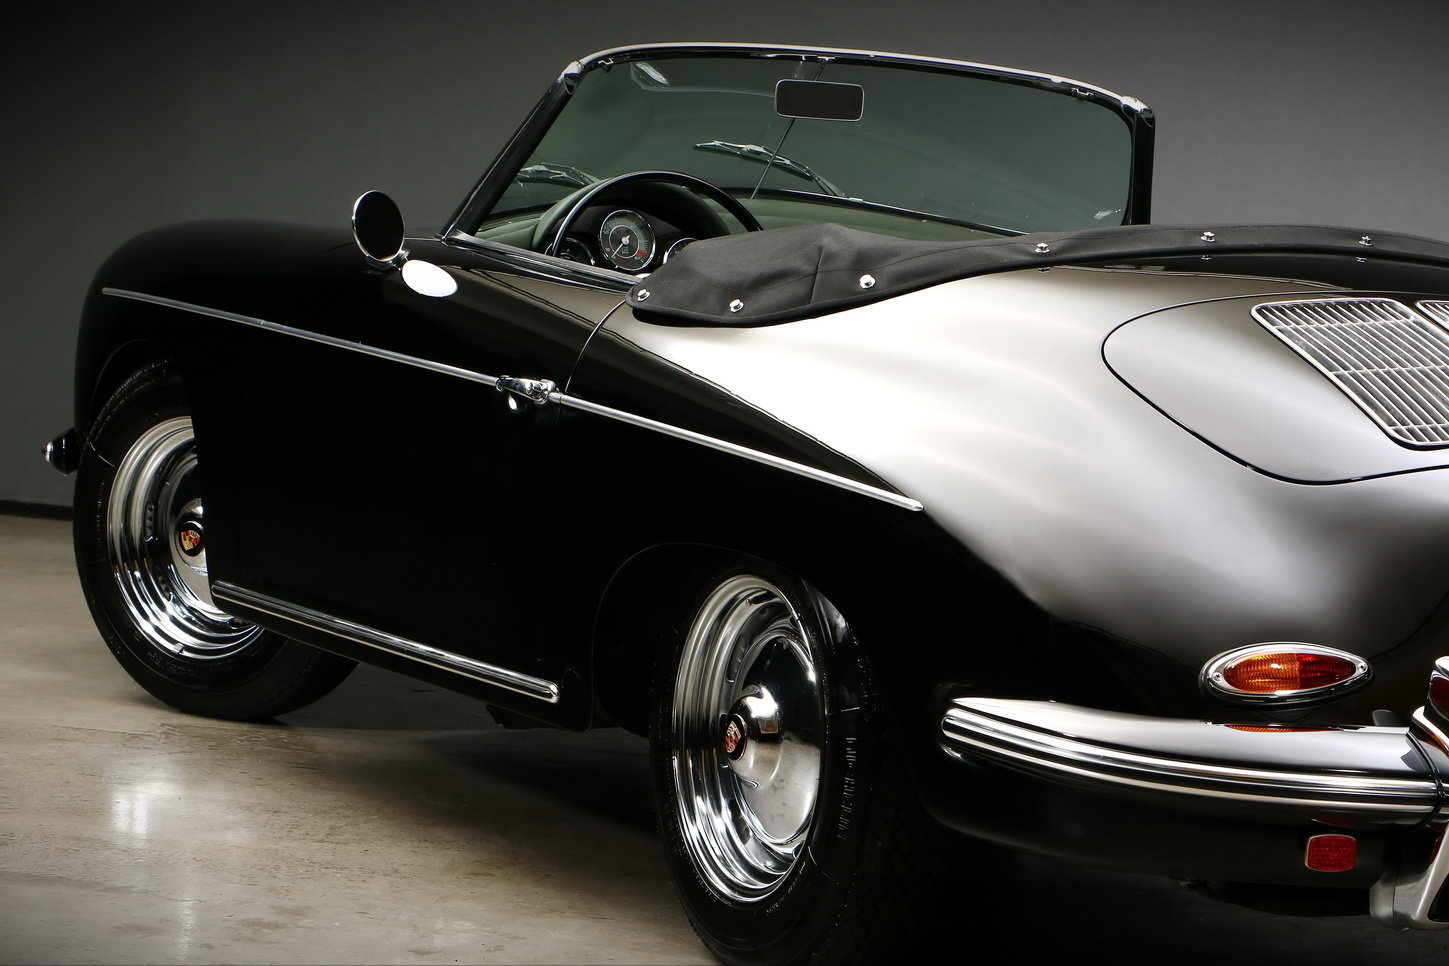 1961 Porsche 356 B T6 Roadster For Sale (picture 4 of 6)